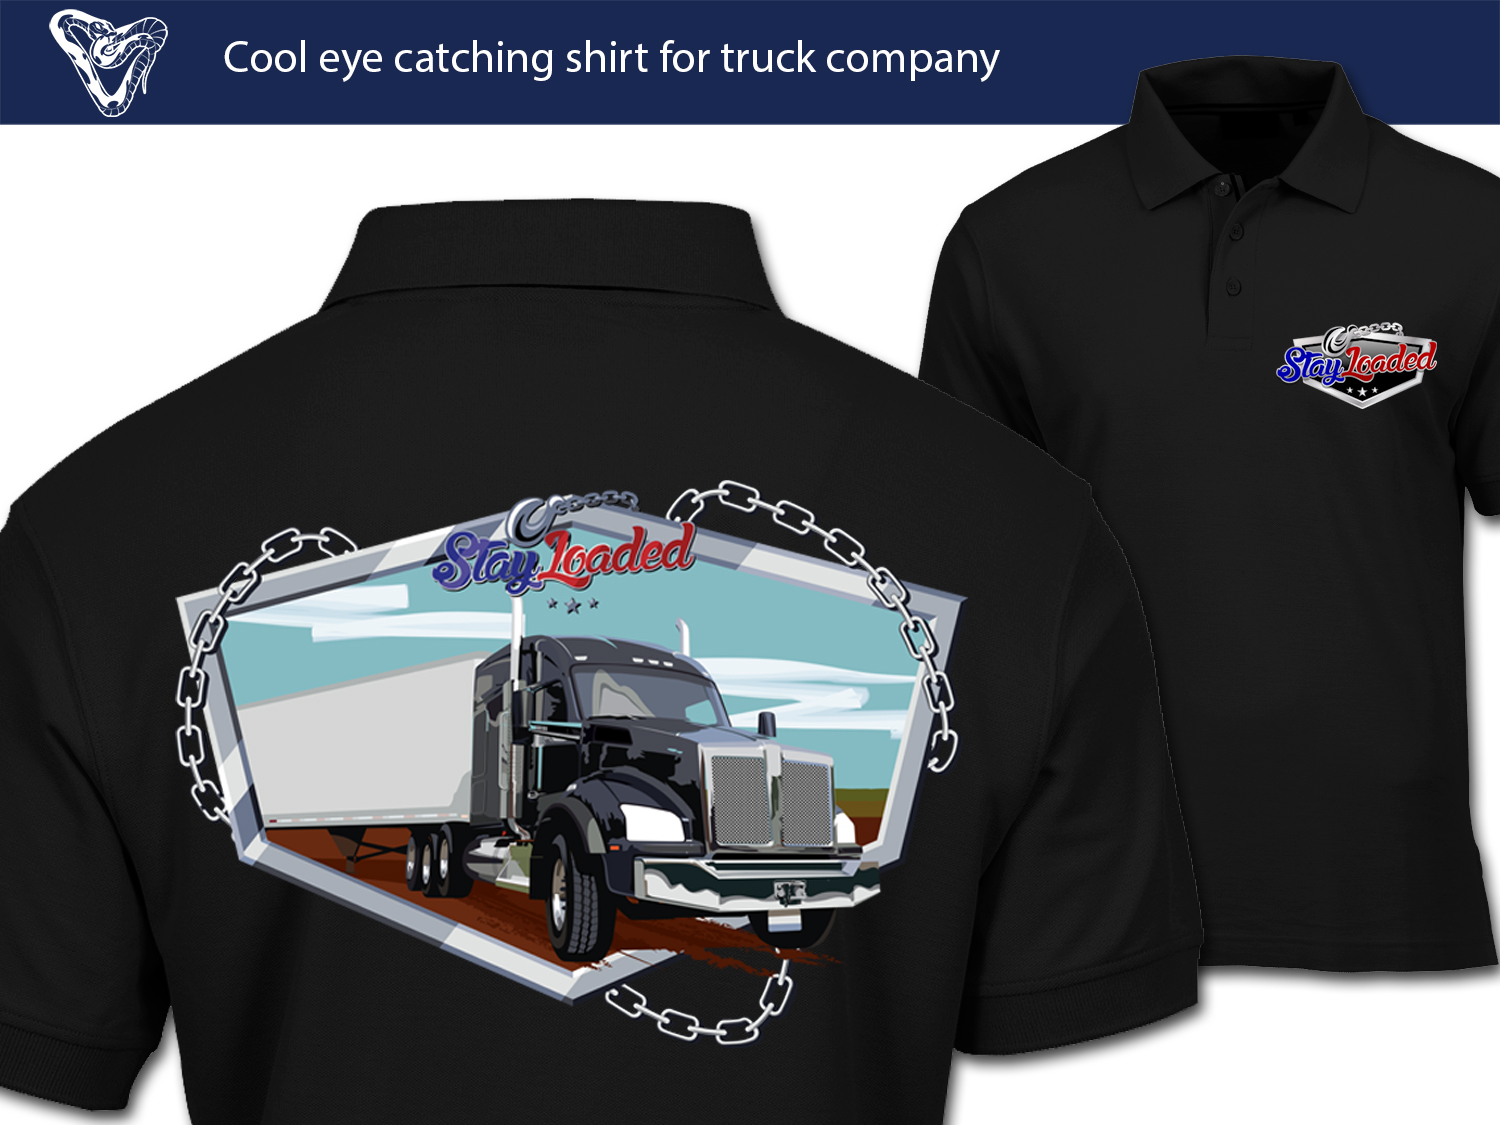 Masculine Bold Trucking Company T Shirt Design For A Company By